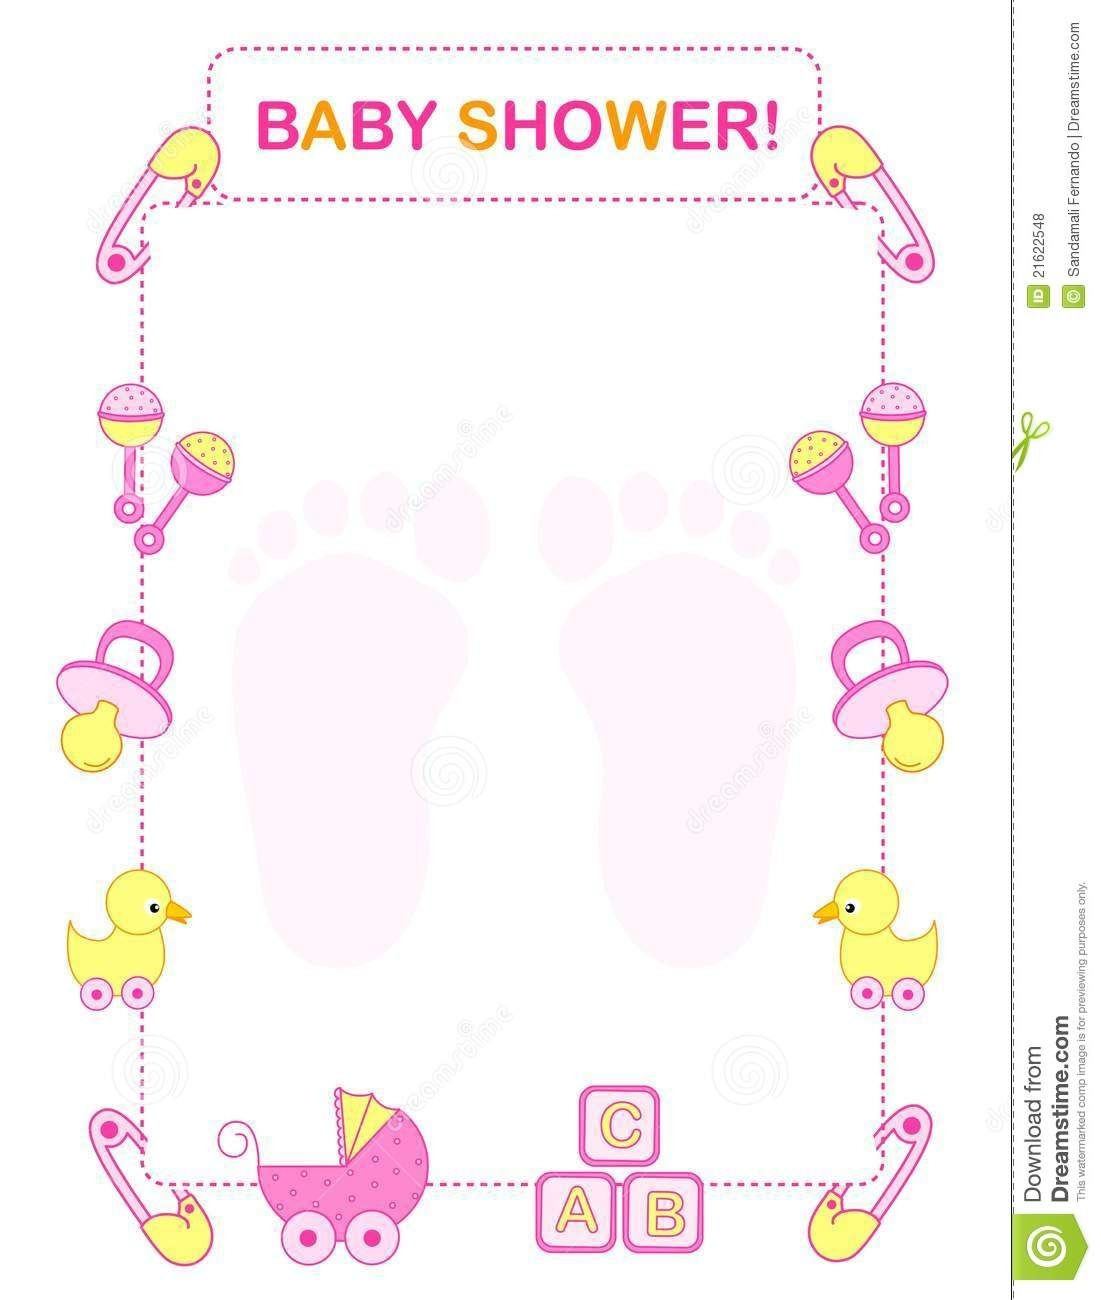 Free Printable Baby Shower Clip Art (59 ) | Baby Shower In 2019 - Free Printable Baby Shower Clip Art